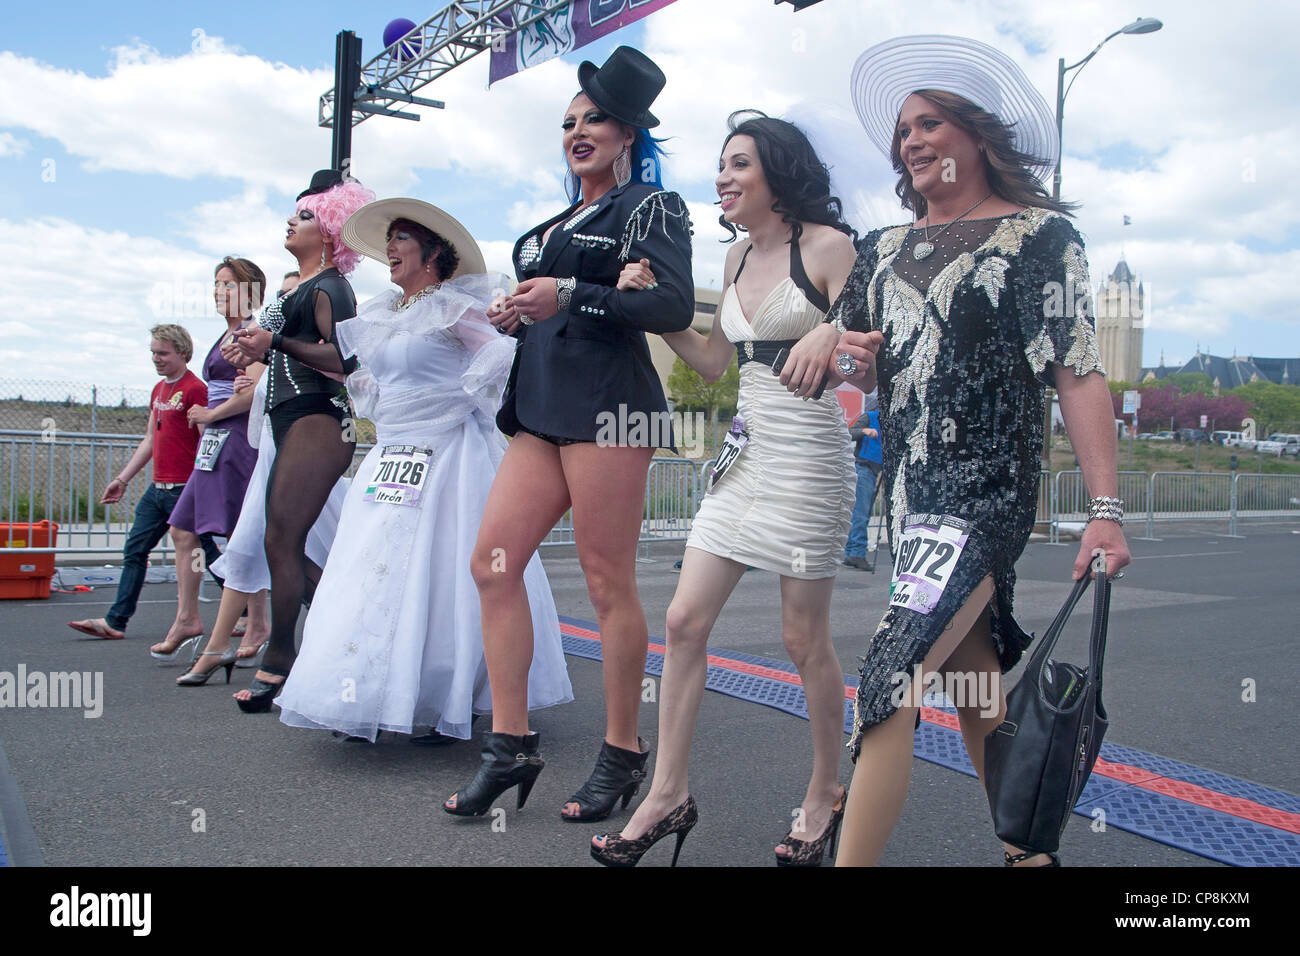 Spokane, Washington - May 6, 2012. Local drag queens walk the entire 7 1/2 miles in high heels at the bloomsday - Stock Image